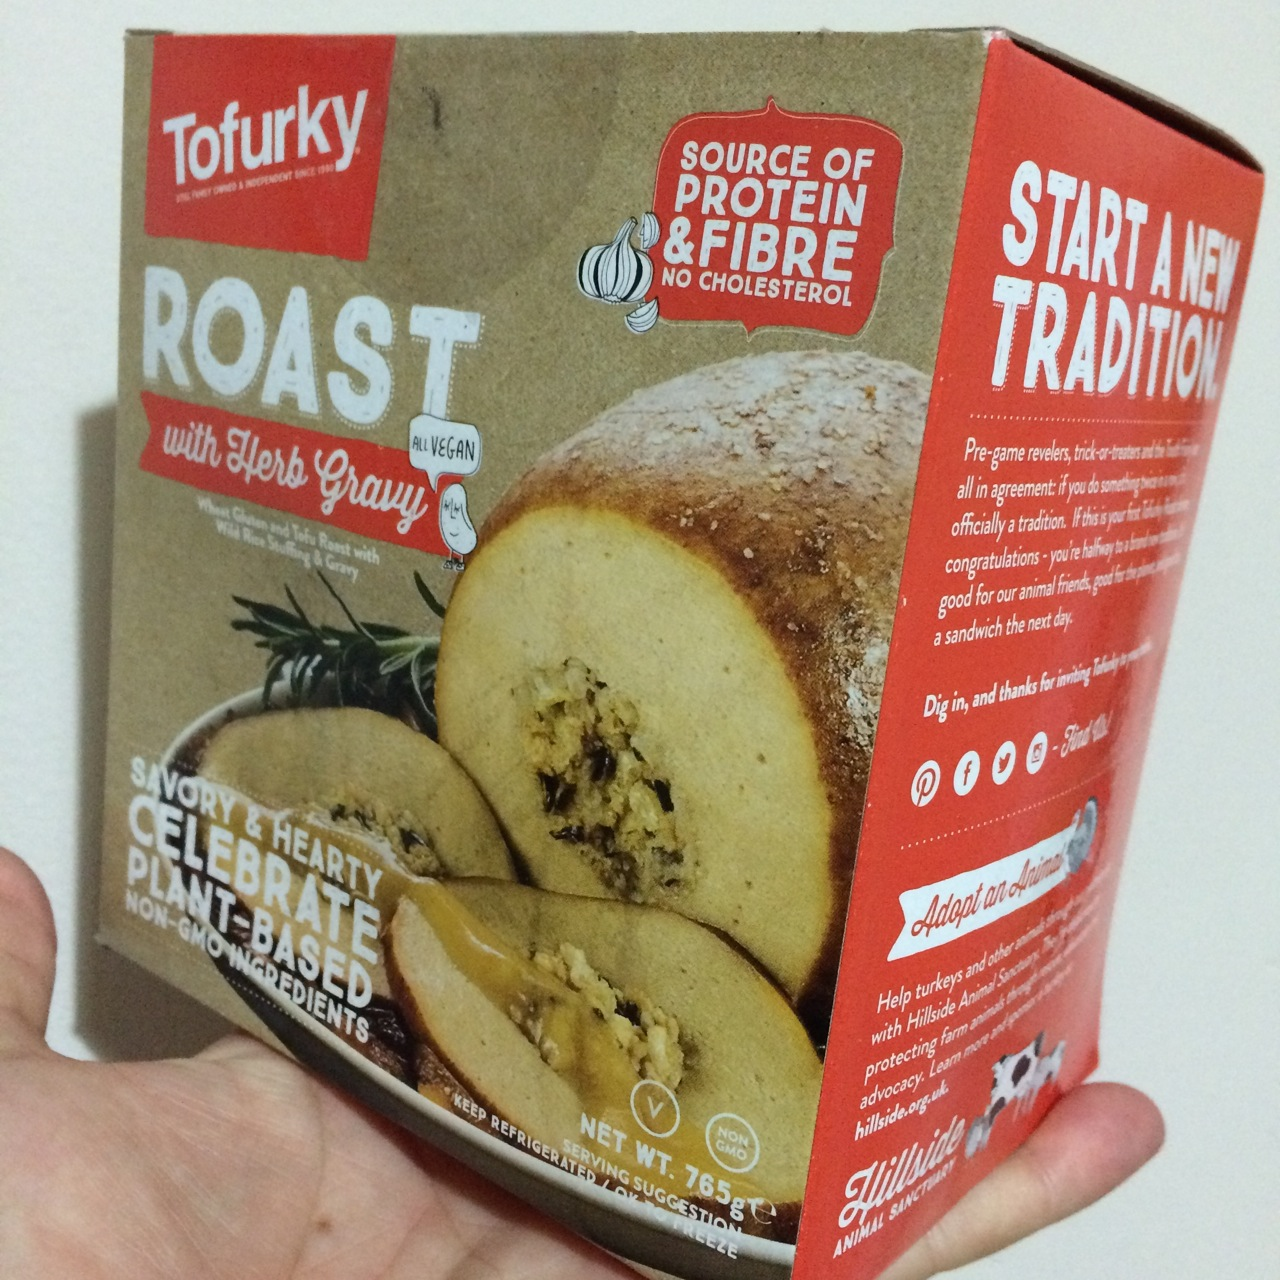 https://i2.wp.com/fatgayvegan.com/wp-content/uploads/2015/11/Tofurky-Roast-with-Herb-Gravy.jpg?fit=1280%2C1280